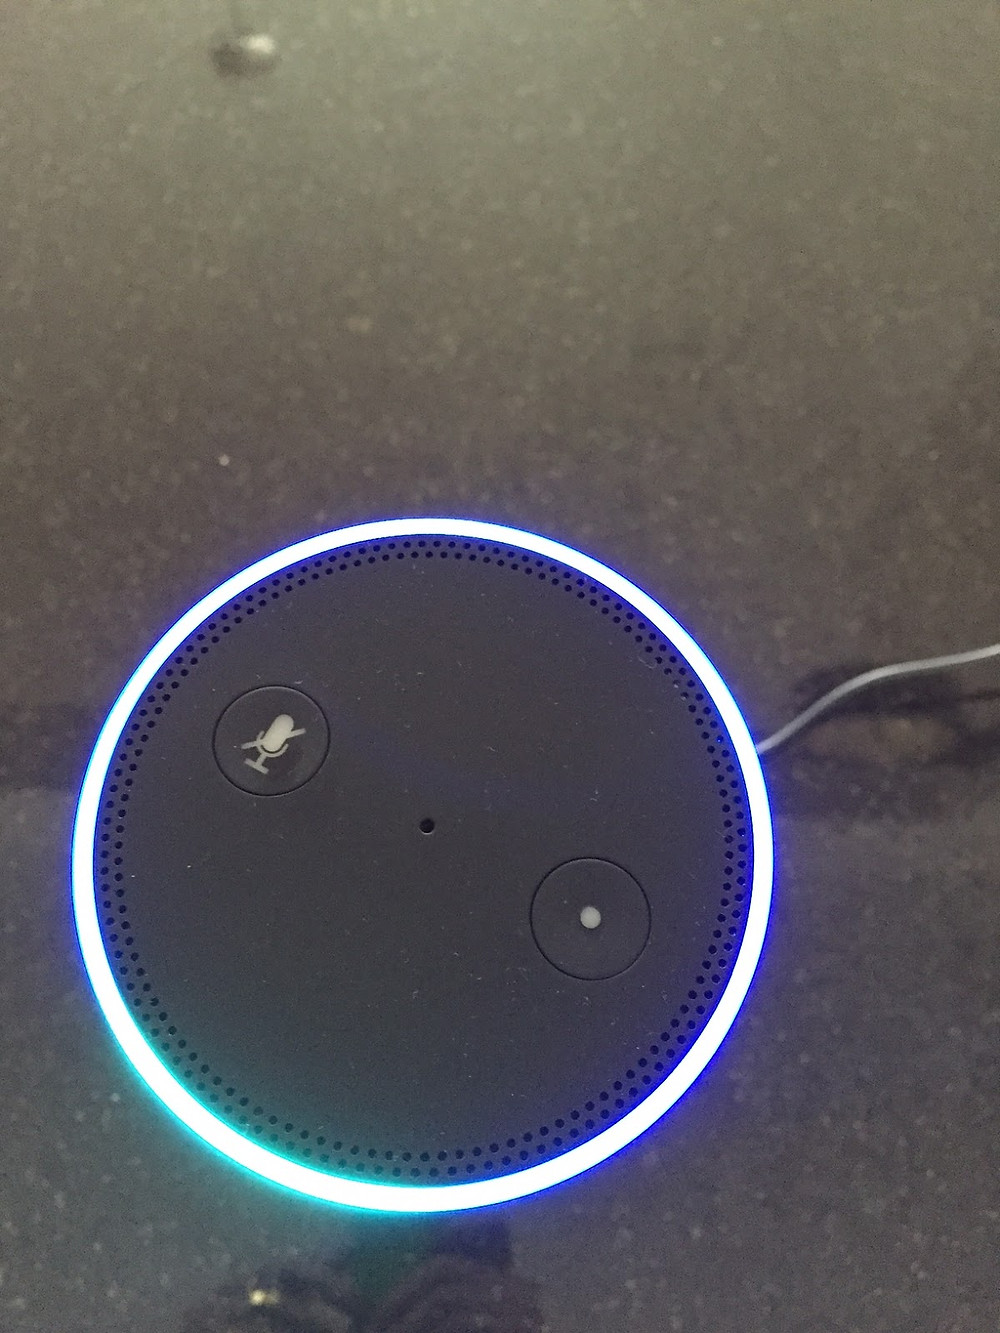 Alexa's beaming 'circle of death'